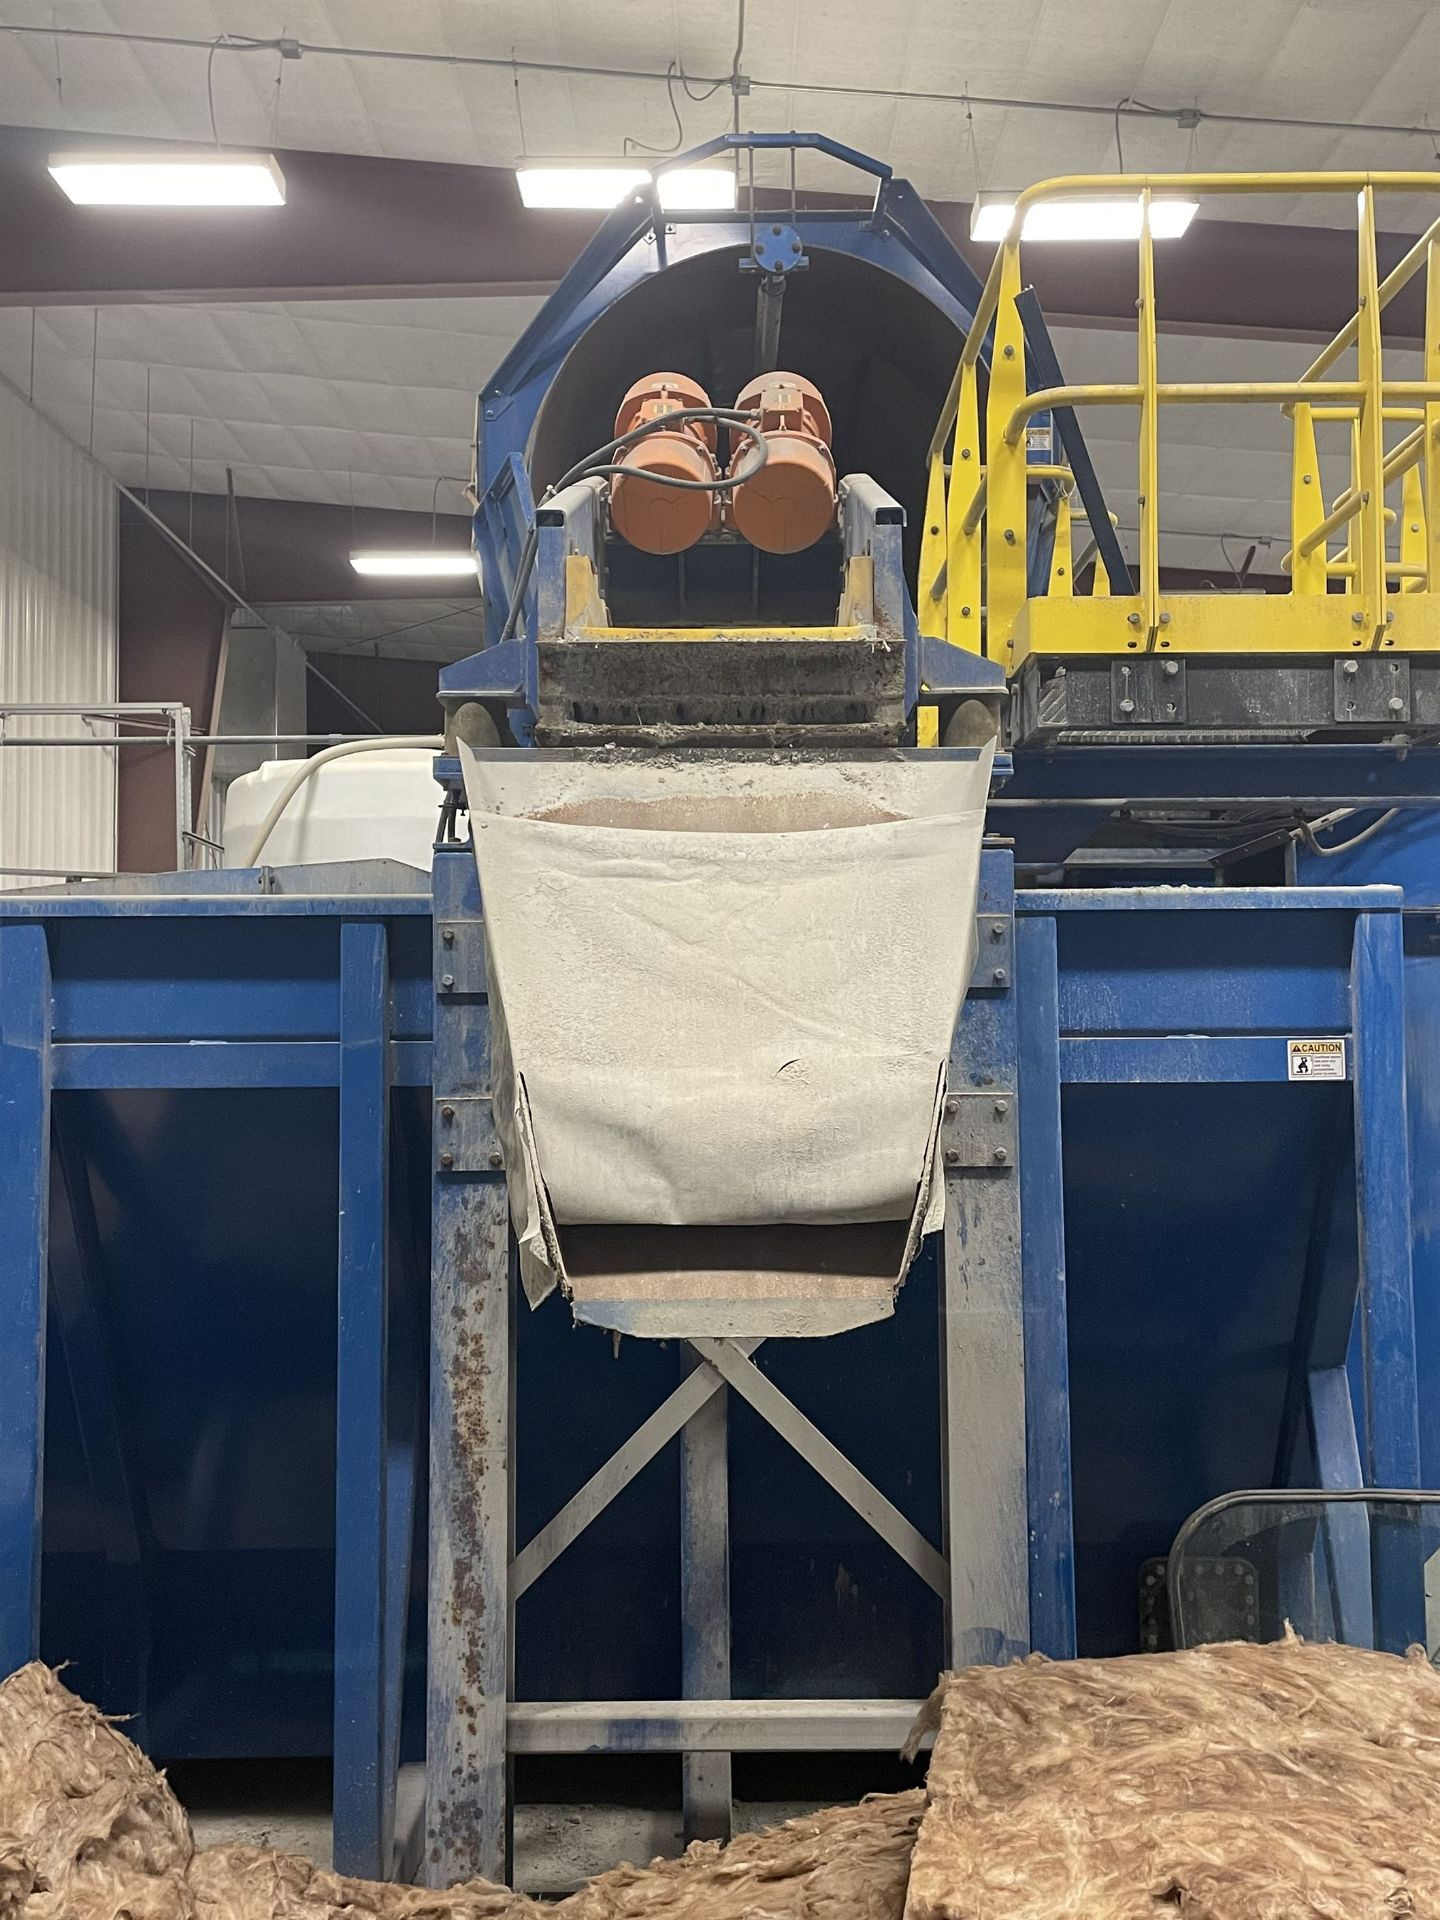 2015 SCREENING MACHINES HLE0ZB-61/300-45 Dewatering Screen, s/n 1512A2186-1, 610 x 3000 x 450mm - Image 2 of 4